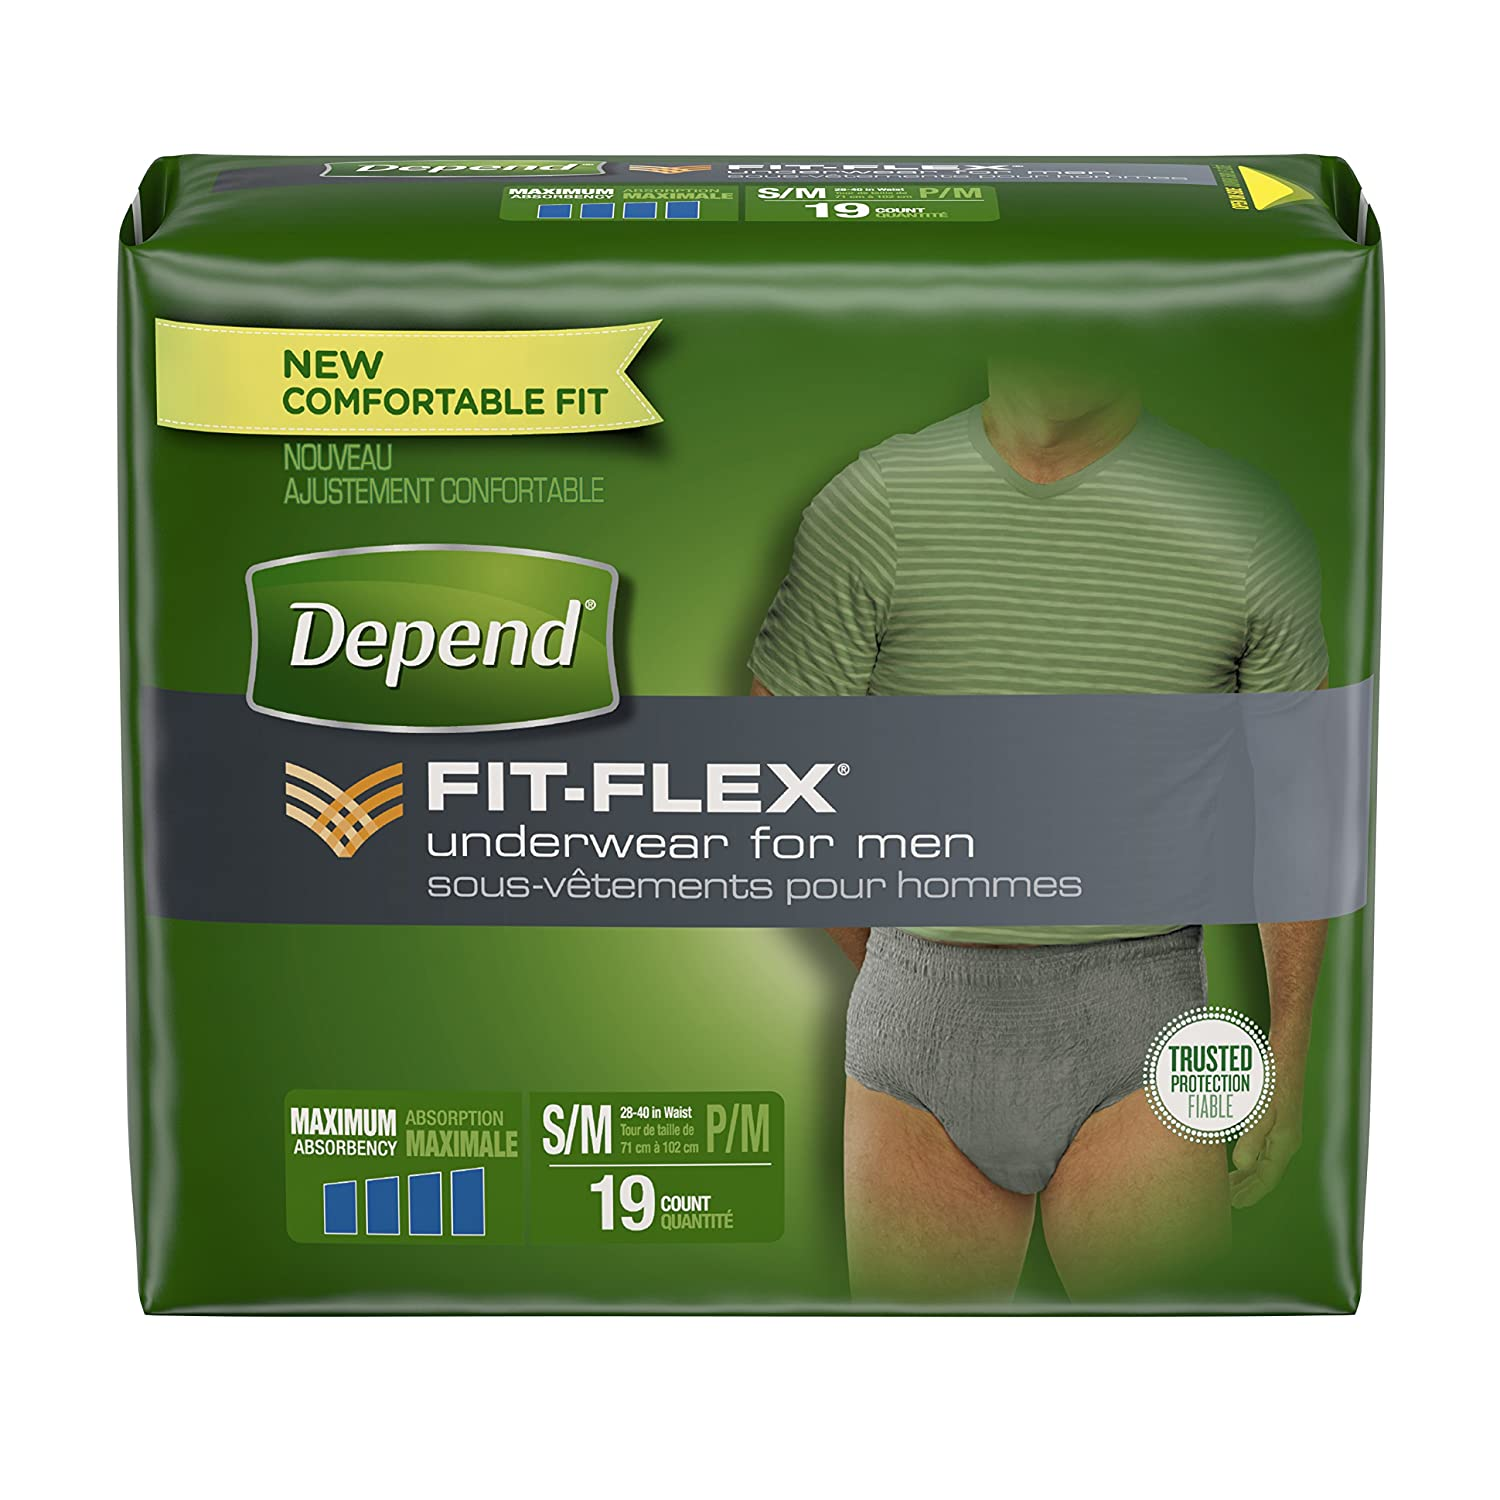 Depend Maximum Absorbency Incontinence Underwear for Men, Small/Medium, 19 Count